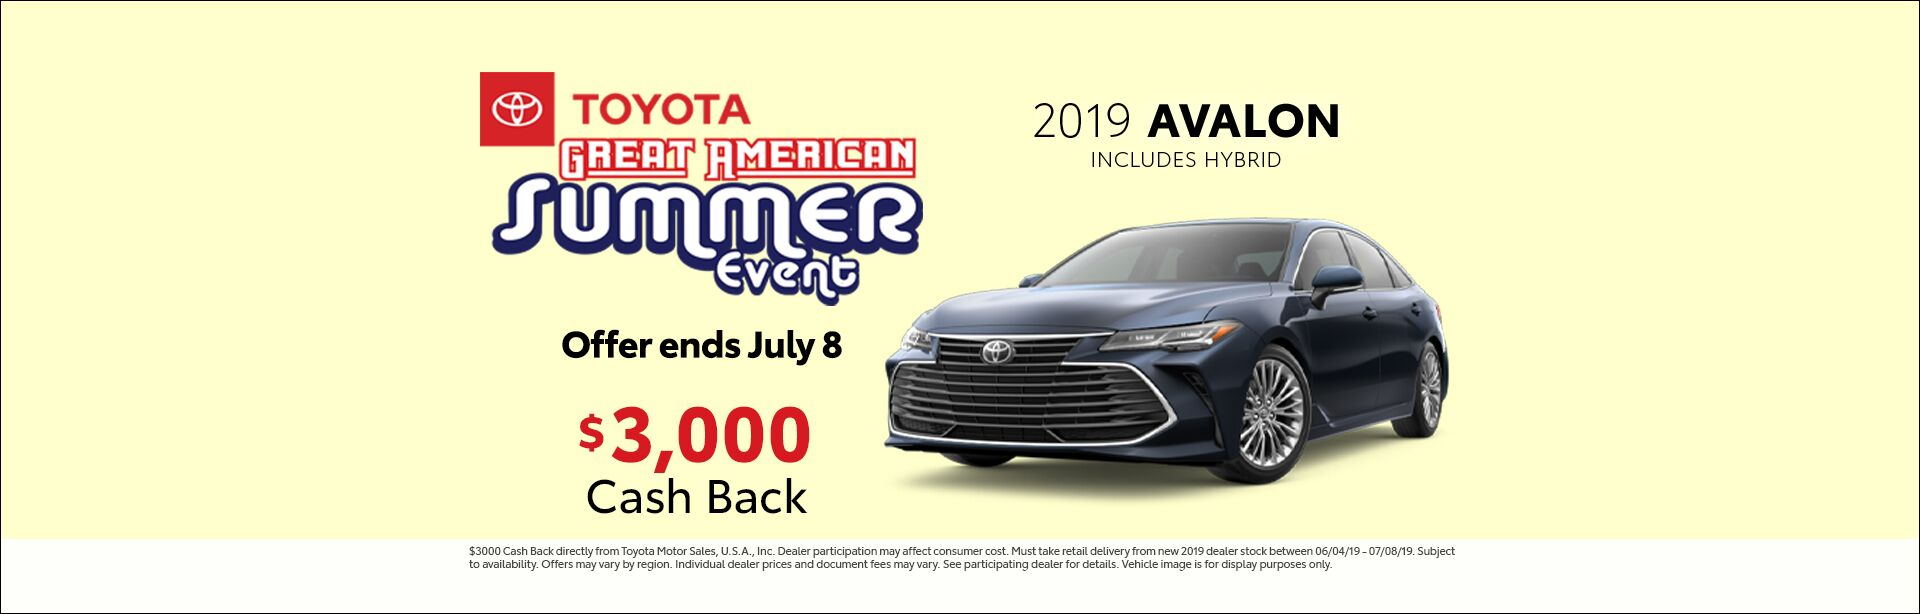 2019 June CIN Toyota Great American Sales Event Avalon